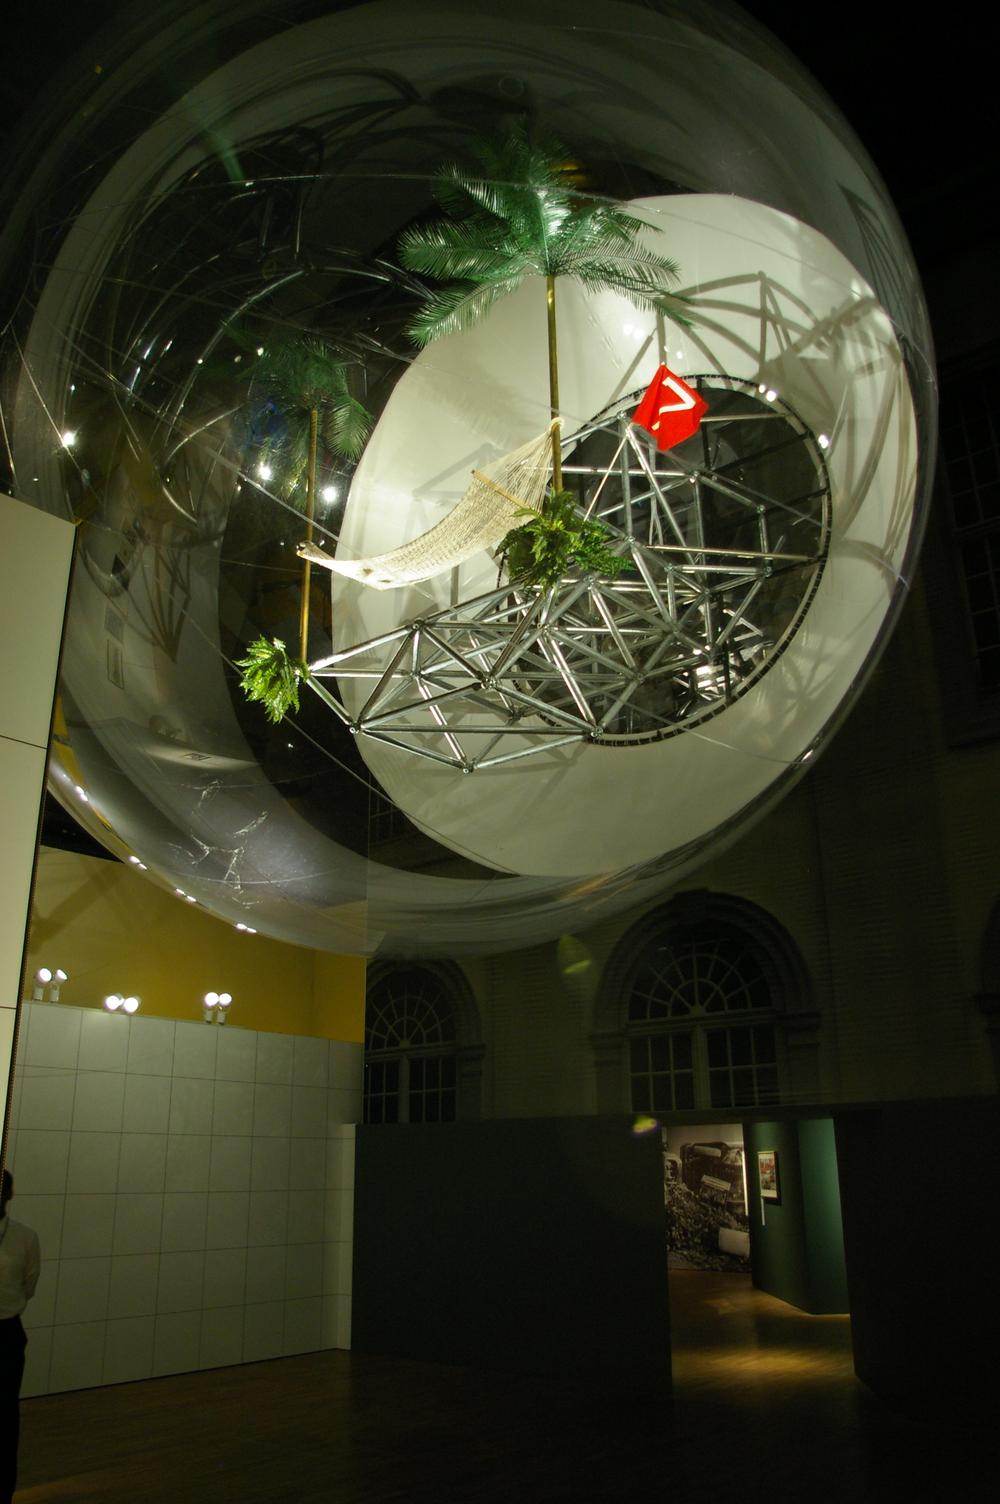 Oasis no. 7 designed by Haus-Rucker-Co for Documenta 1972, inflatable structure displayed at Cold War Modern, V&A (2008)